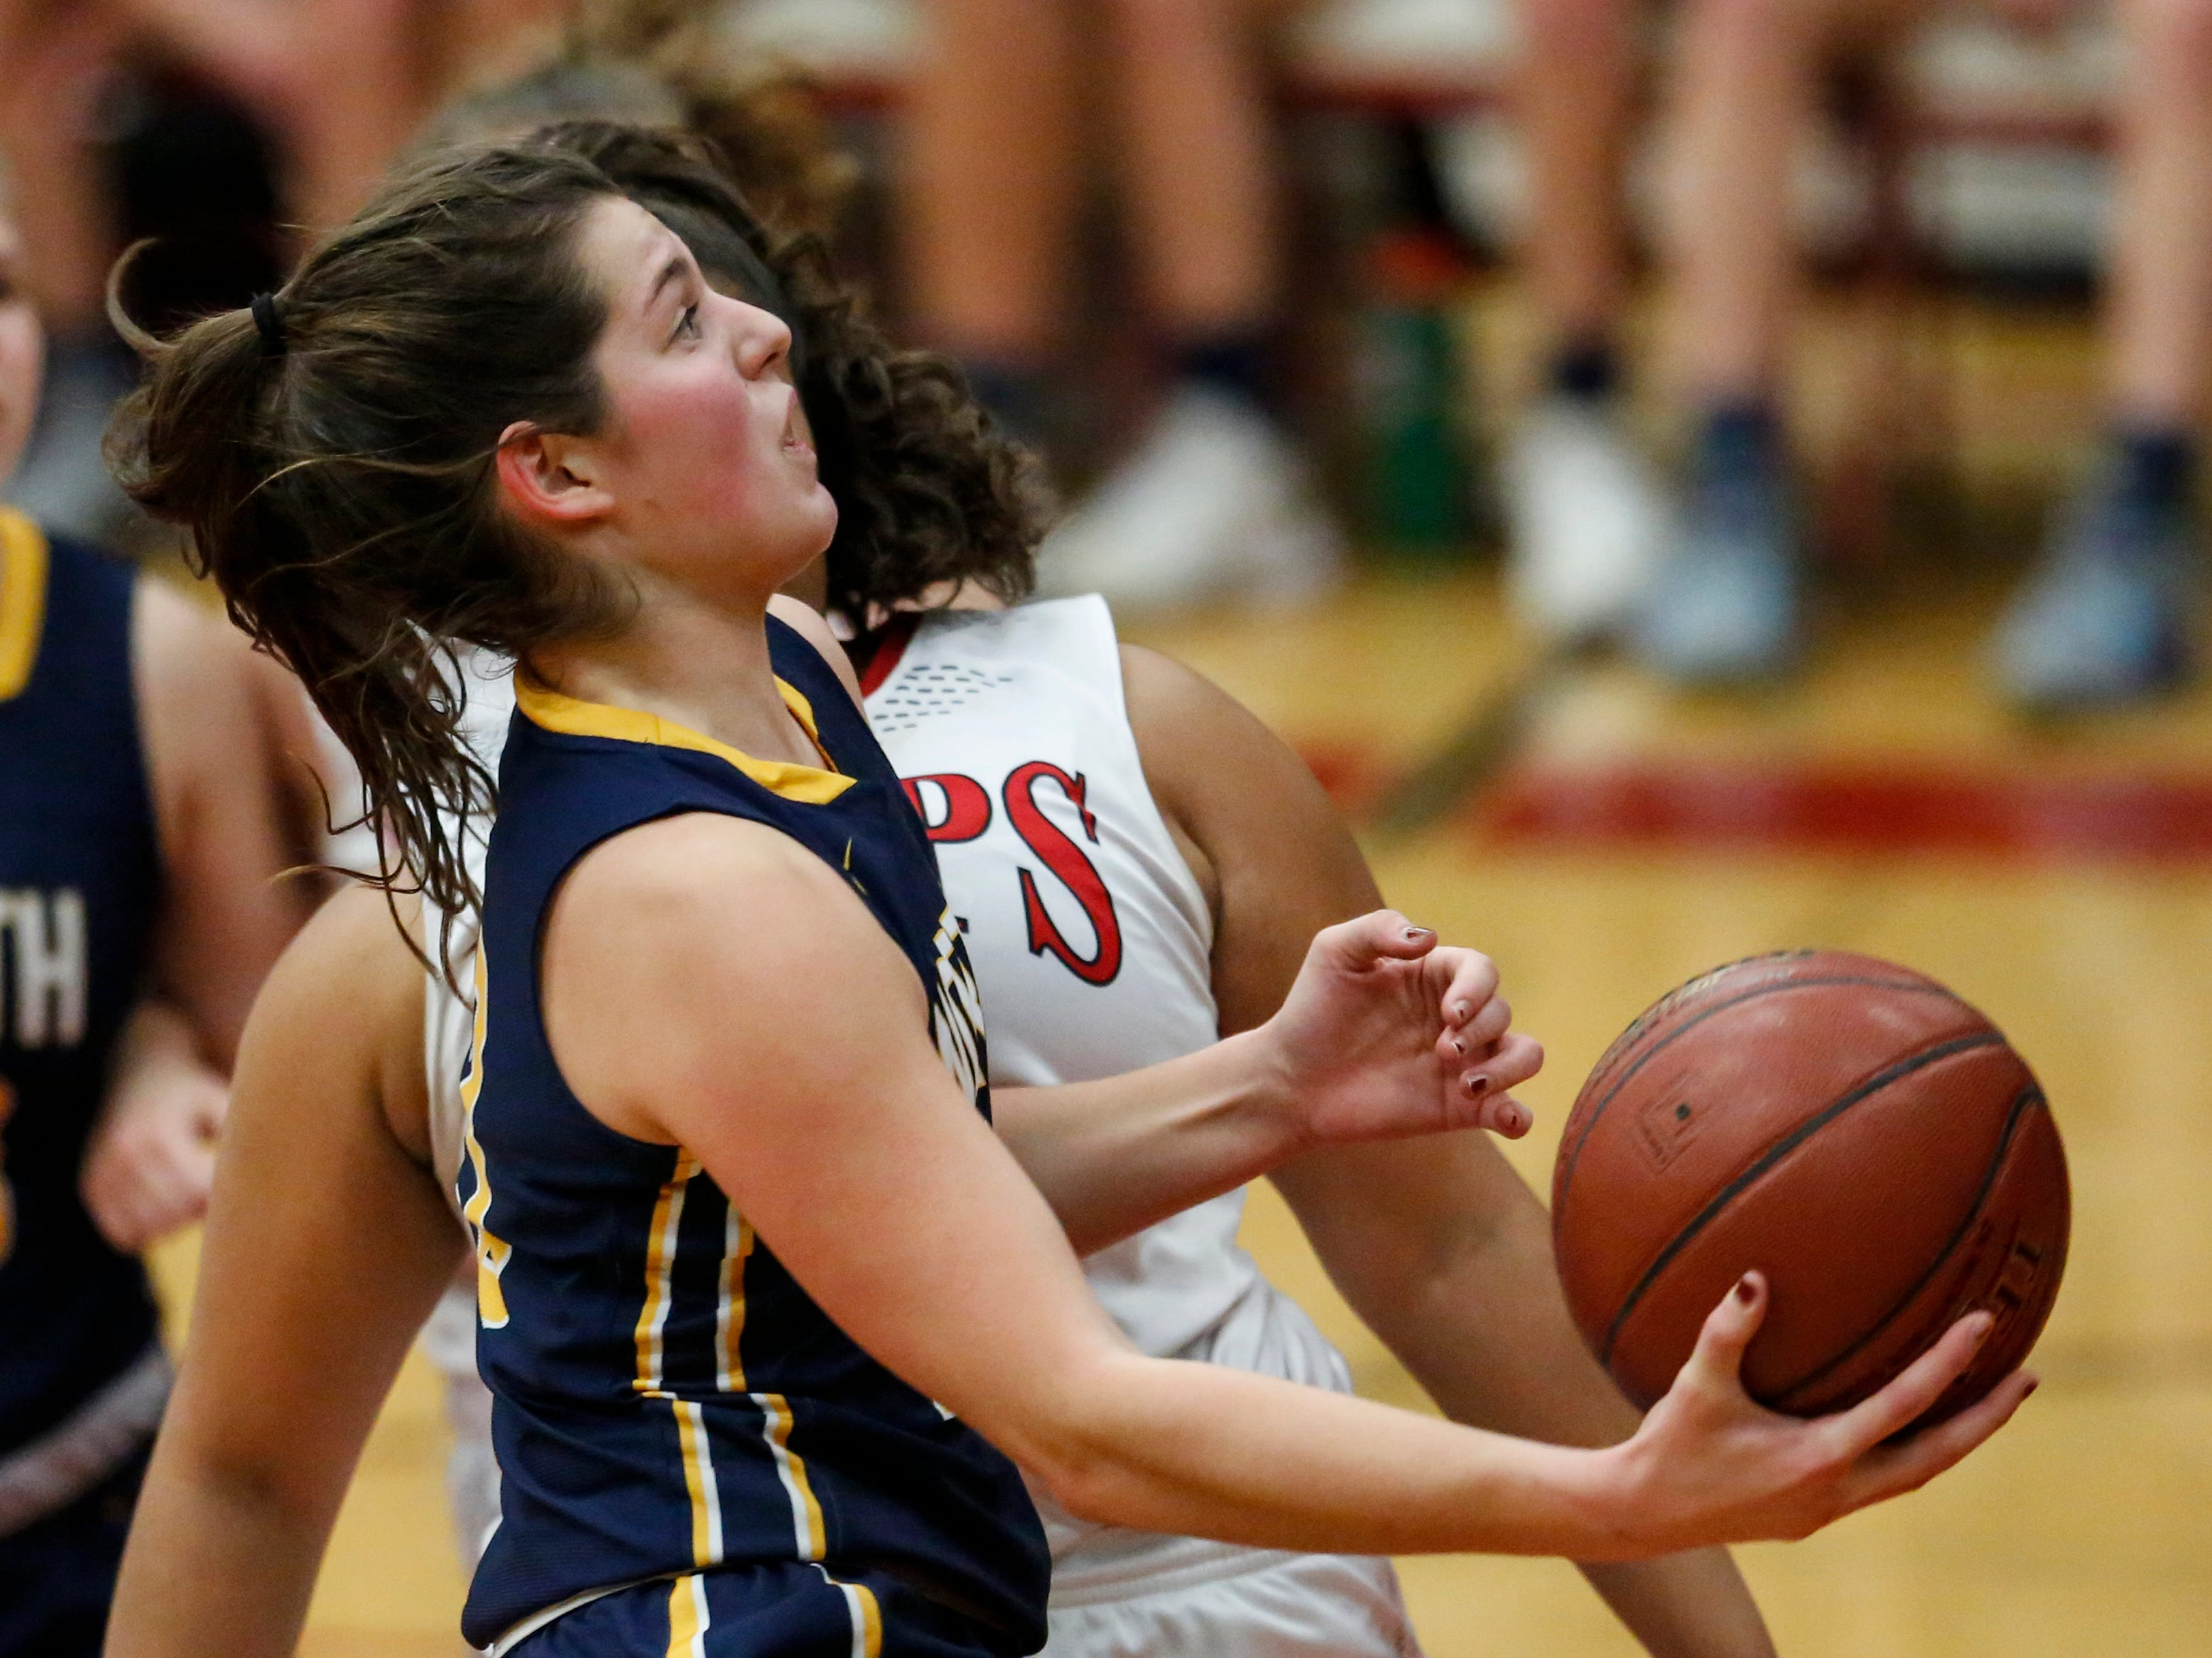 Sheboygan North's Meredith Opie drives to the hoop against Manitowoc Lincoln during a Fox River Classic Conference game at Manitowoc Lincoln High School Friday, December 14, 2018, in Manitowoc, Wis. Joshua Clark/USA TODAY NETWORK-Wisconsin